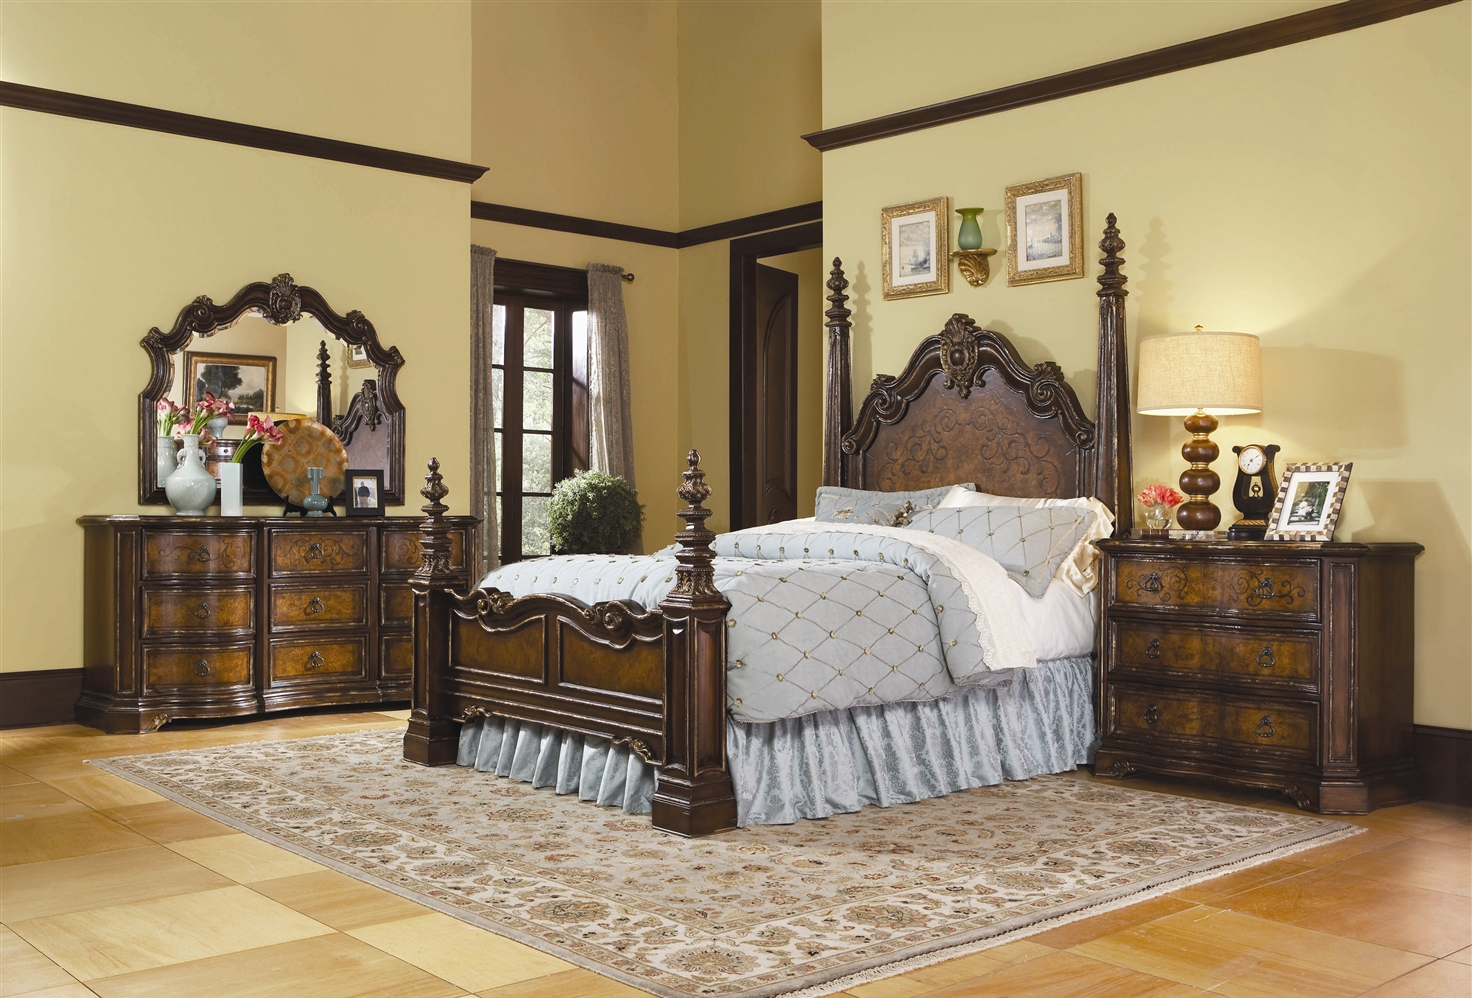 Nice Fancy Bed Frame With Classic Styled Headboard And Footboard Dark Brown  Painted Wood Bedside Table With